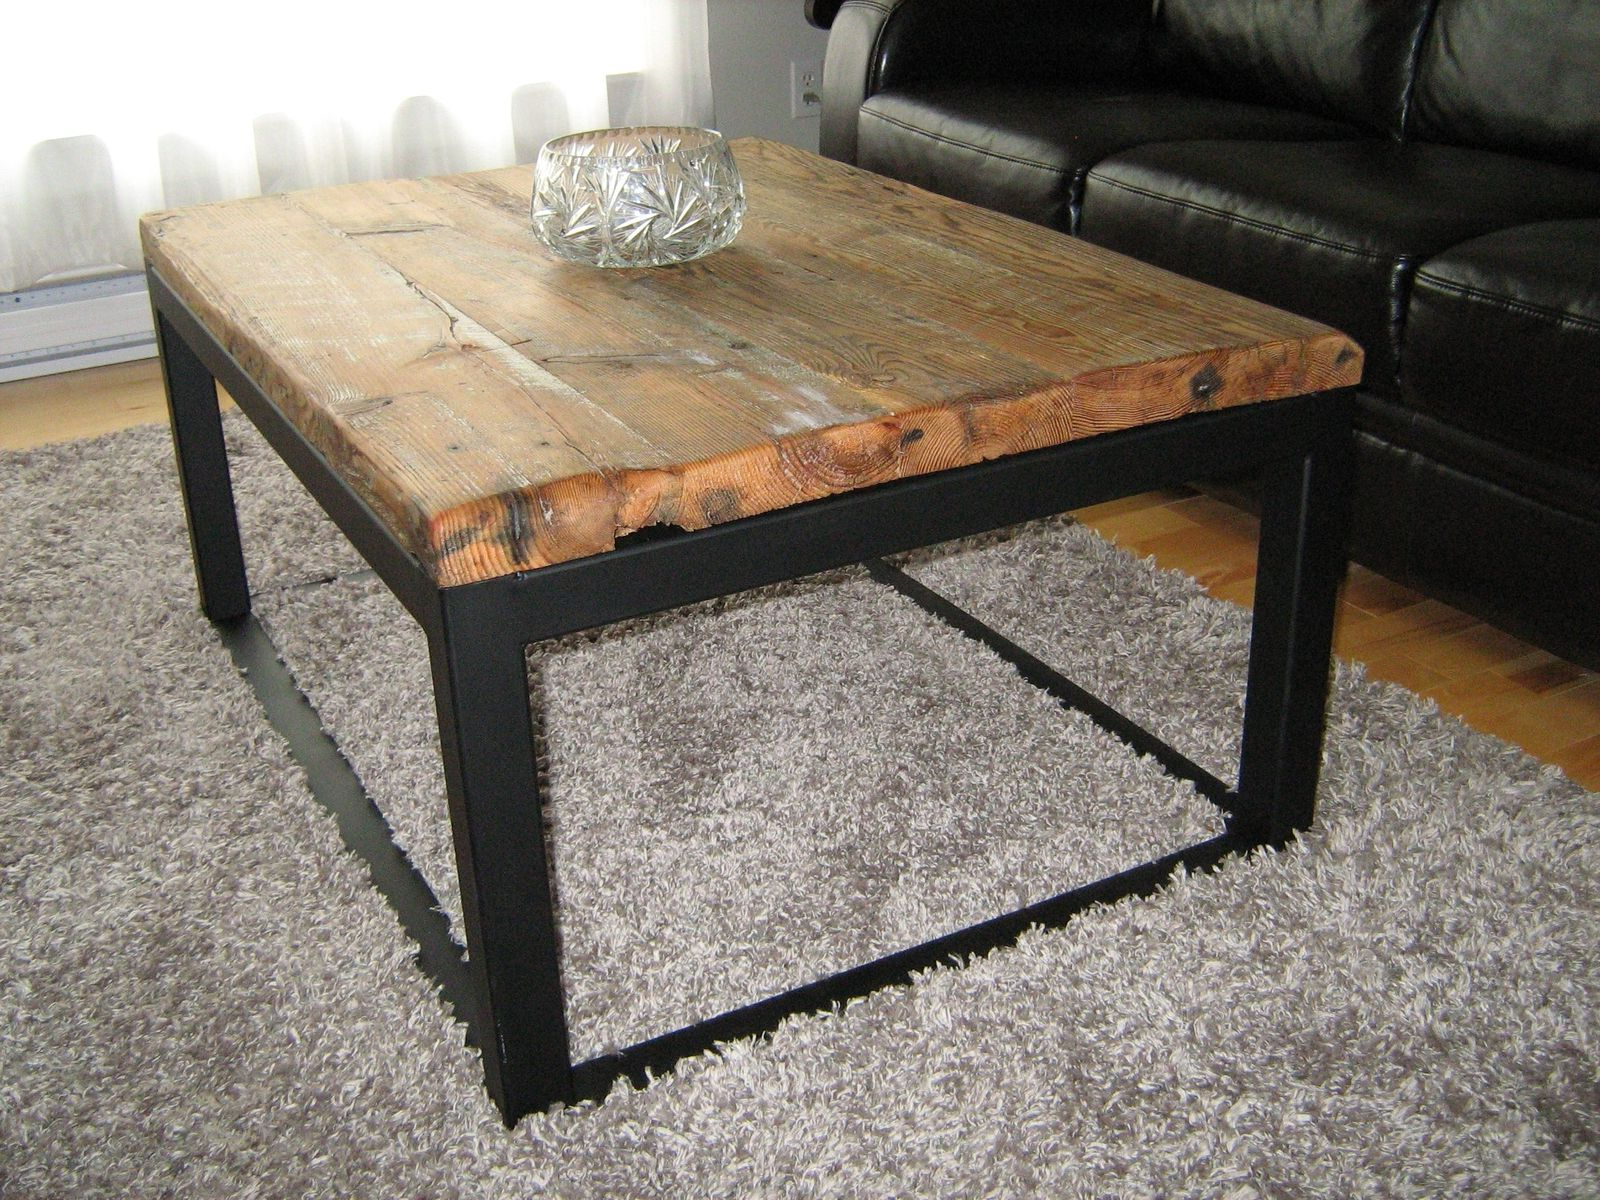 Iron Wood Coffee Tables With Wheels Within Well Known Wood And Metal Coffee Table Awesome – Thelightlaughed (View 8 of 20)